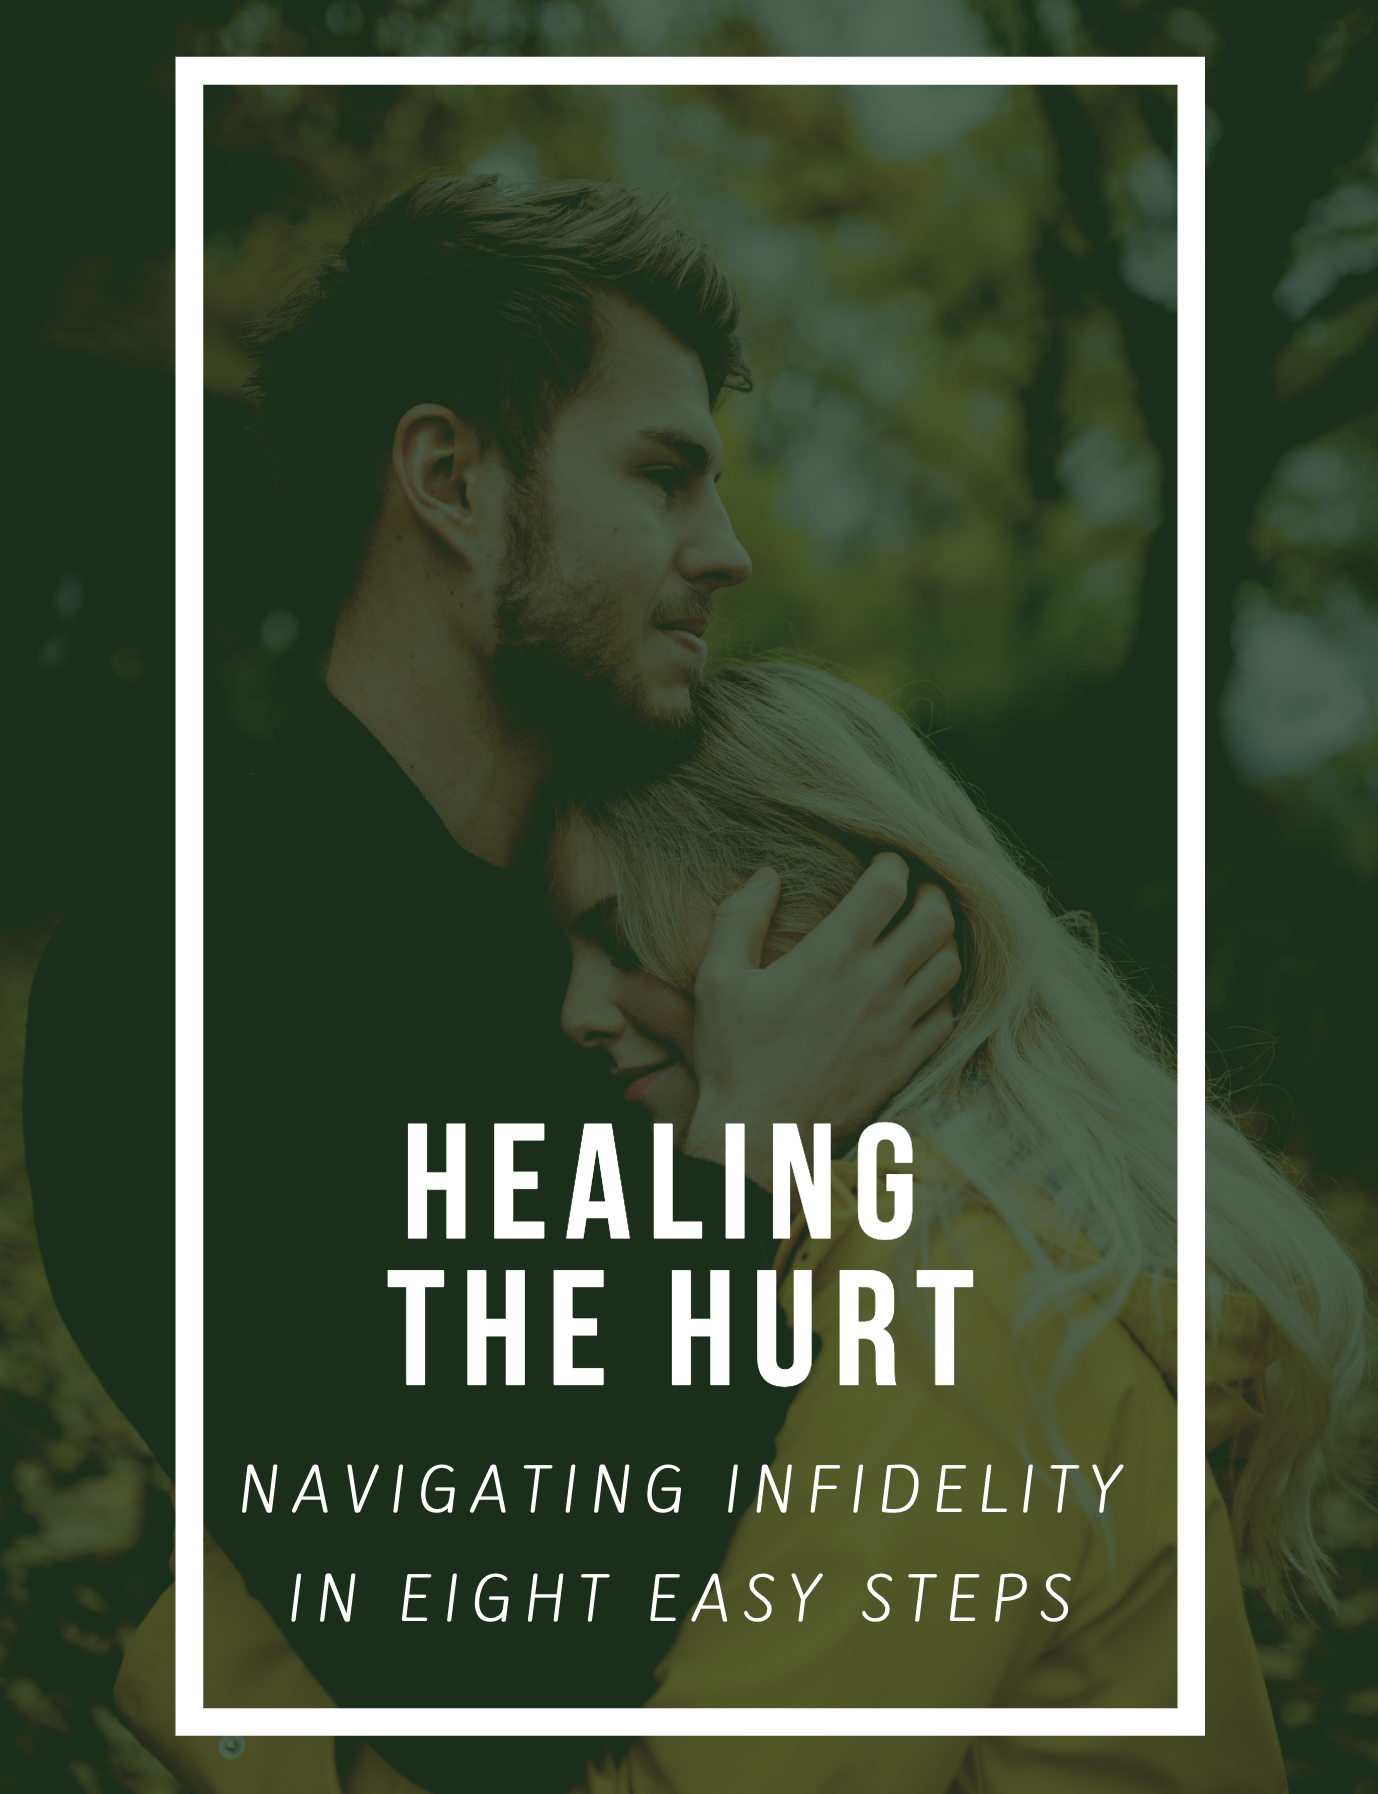 An e-book for hope and healing - with Dr. Kendra A. O'Hora, Licensed Clinical Marriage and Family Therapist